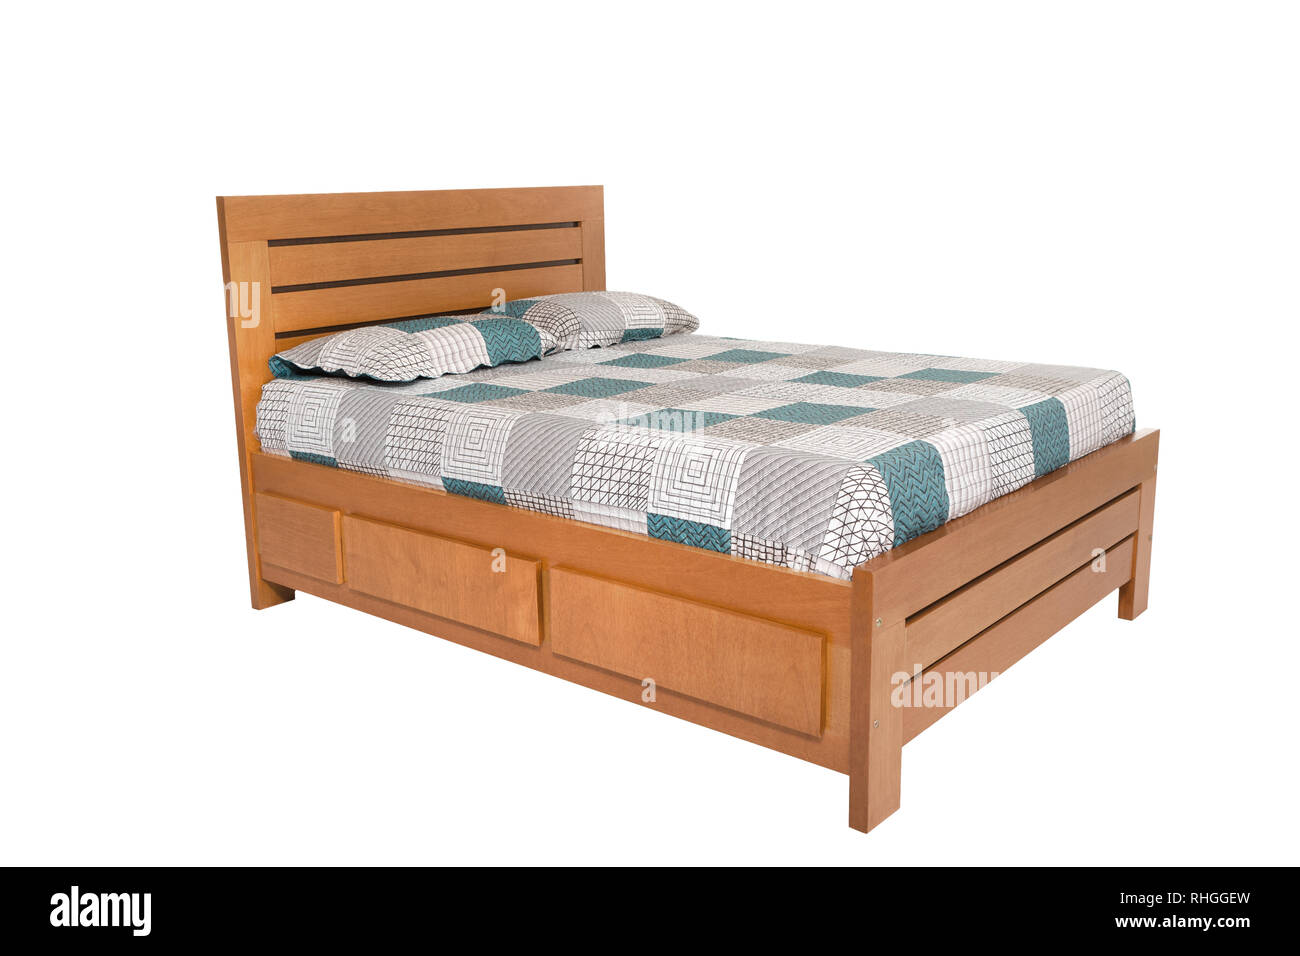 Picture of: Wooden Double Bed Isolated On White Background Stock Photo Alamy